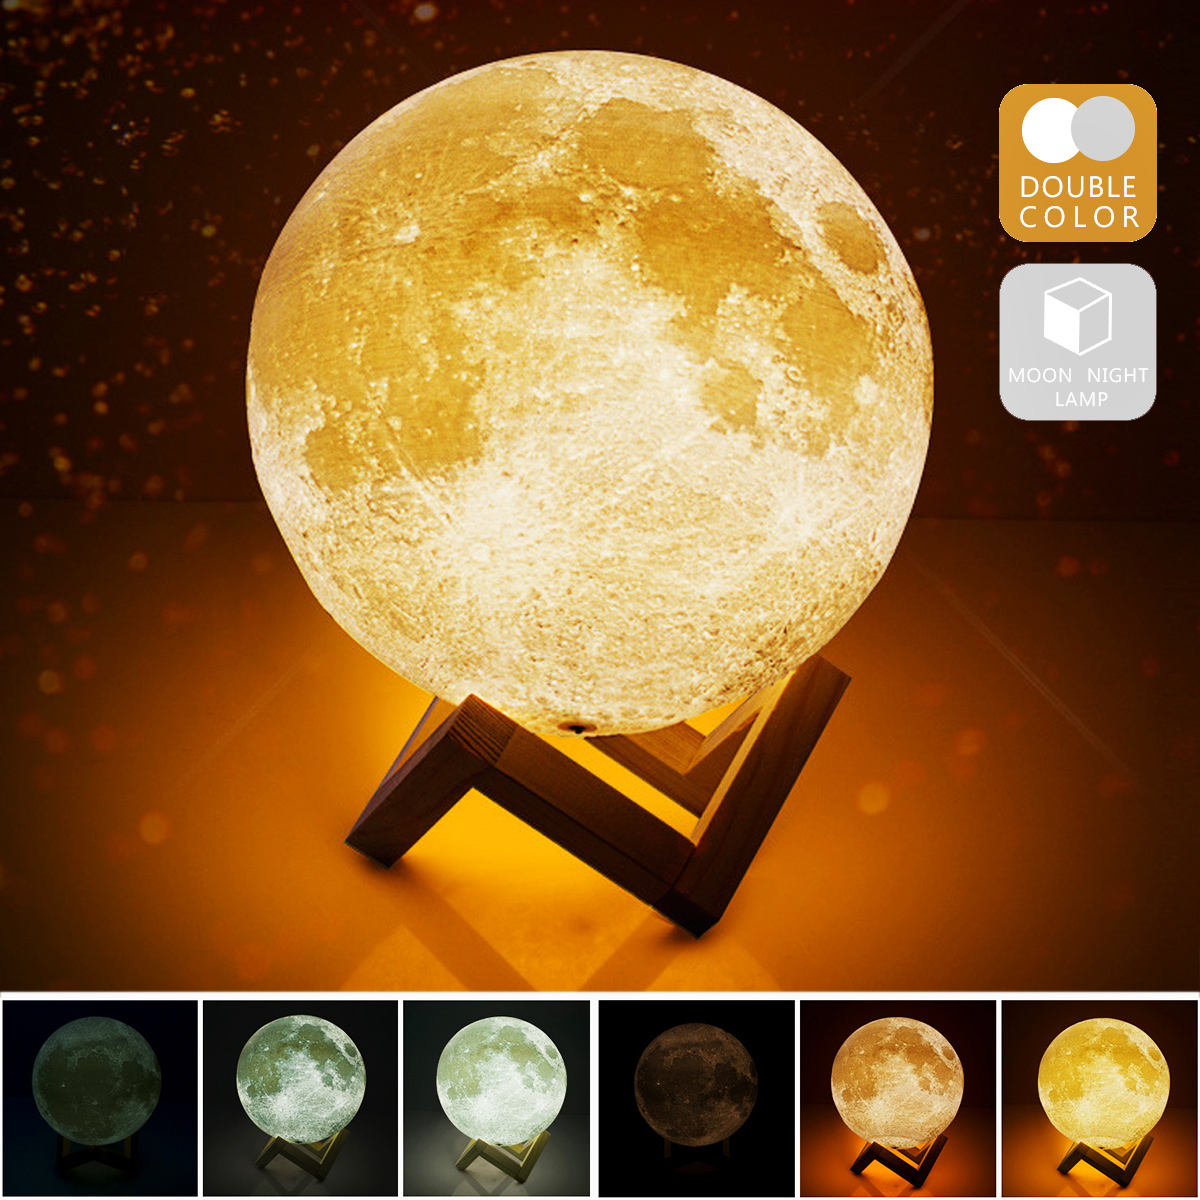 3D Print Moon Lamp USB Rechargeable 2 Color Touch Control Novelty Lighting Adjustable Moon Lamp Home Decoration New